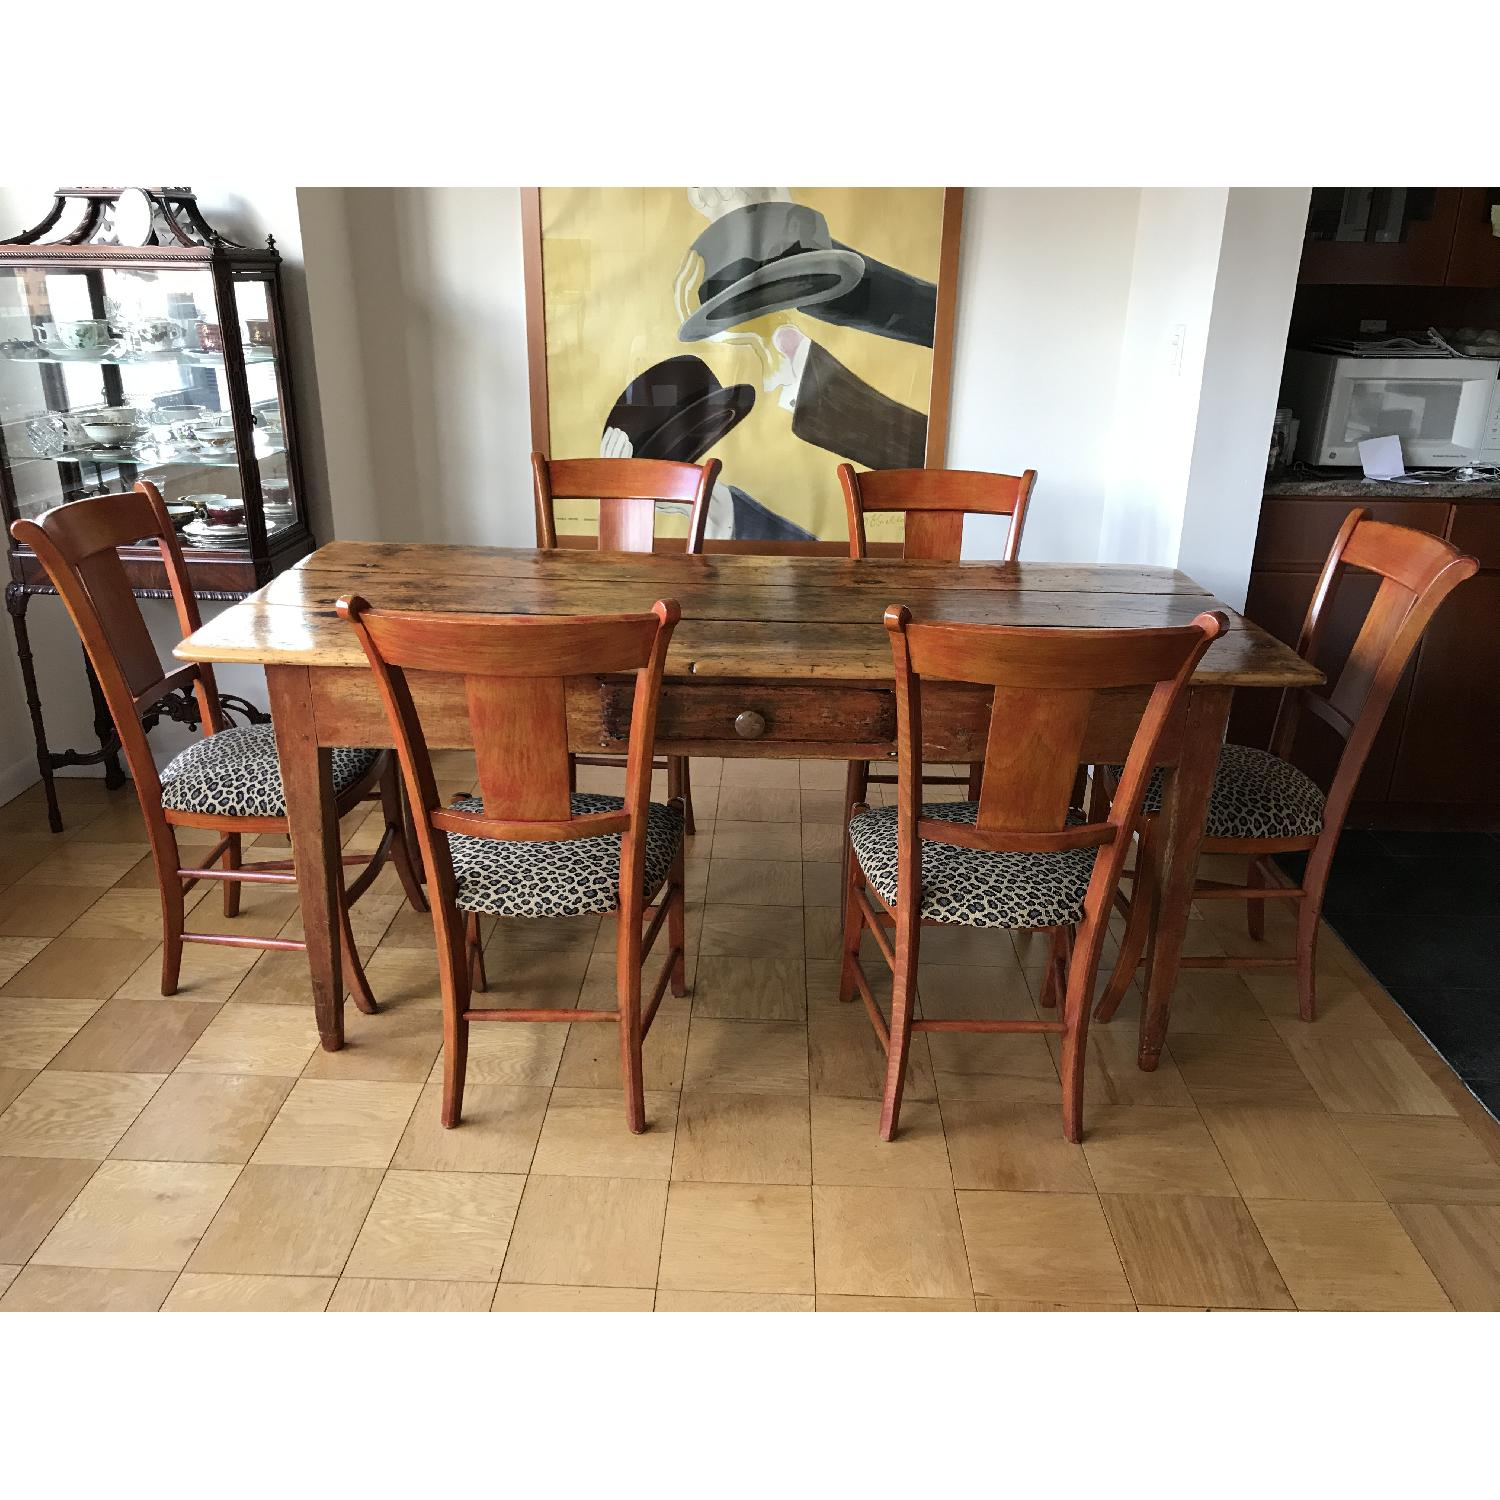 Antique Farm Wood Table w/ 6 Chairs